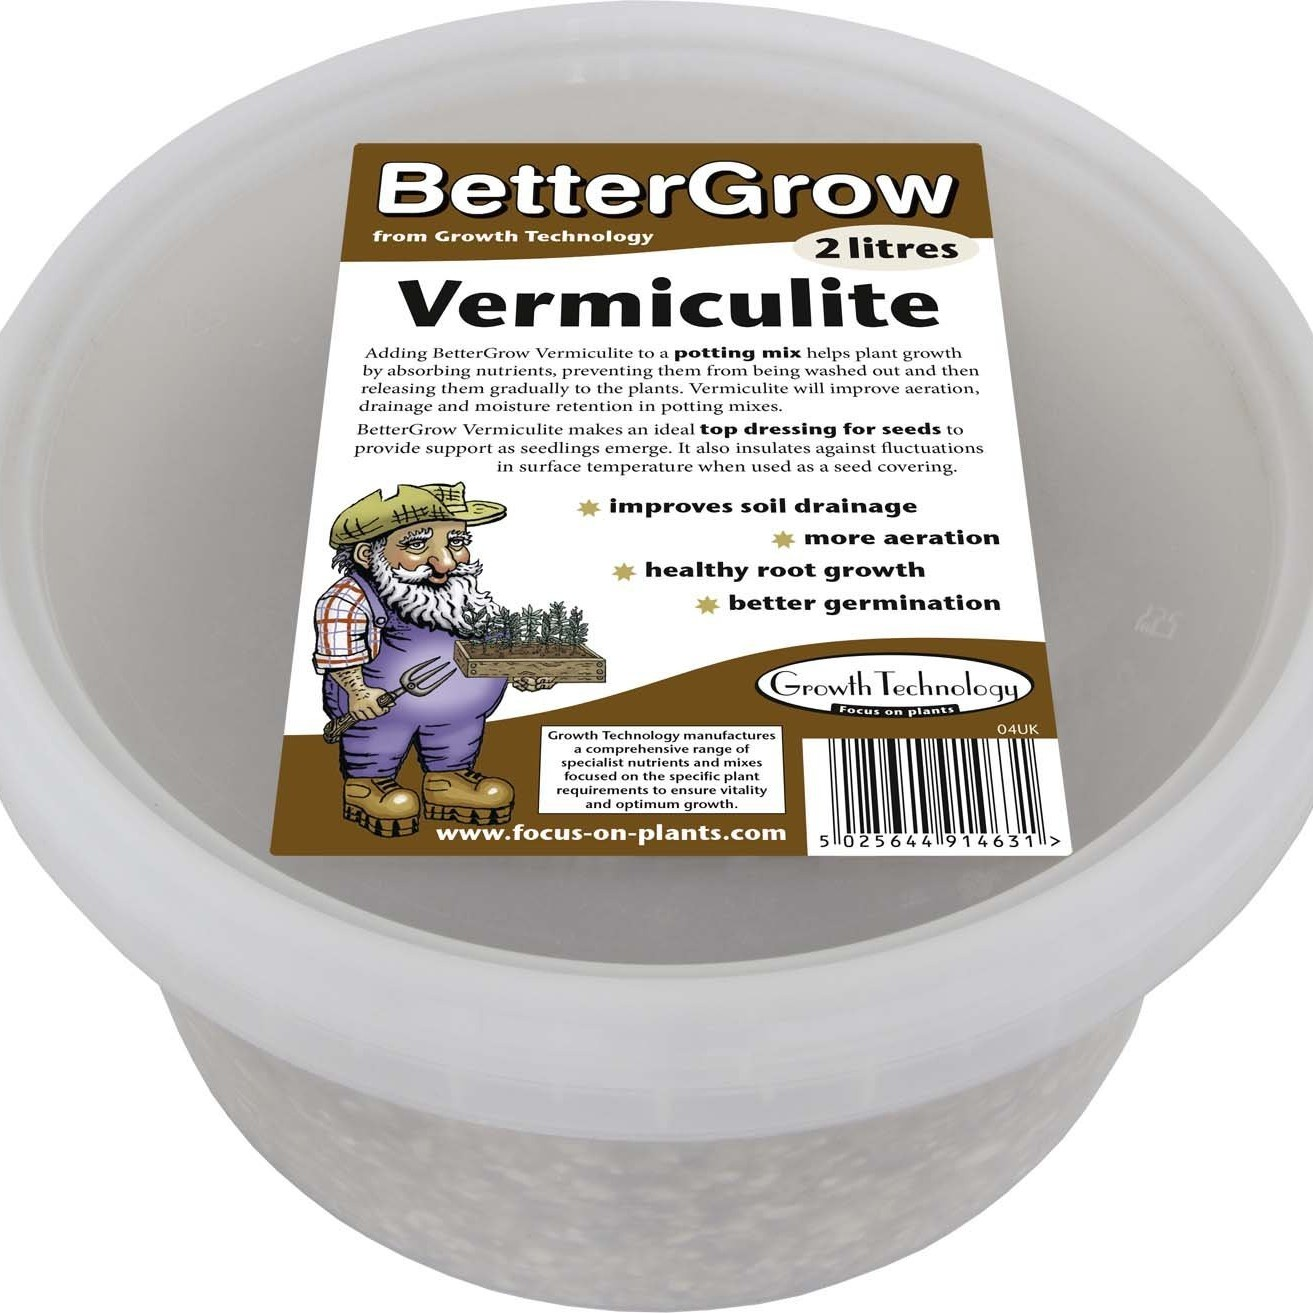 Growth Technology Bettergrow - Vermiculite Tub - 2 Litres